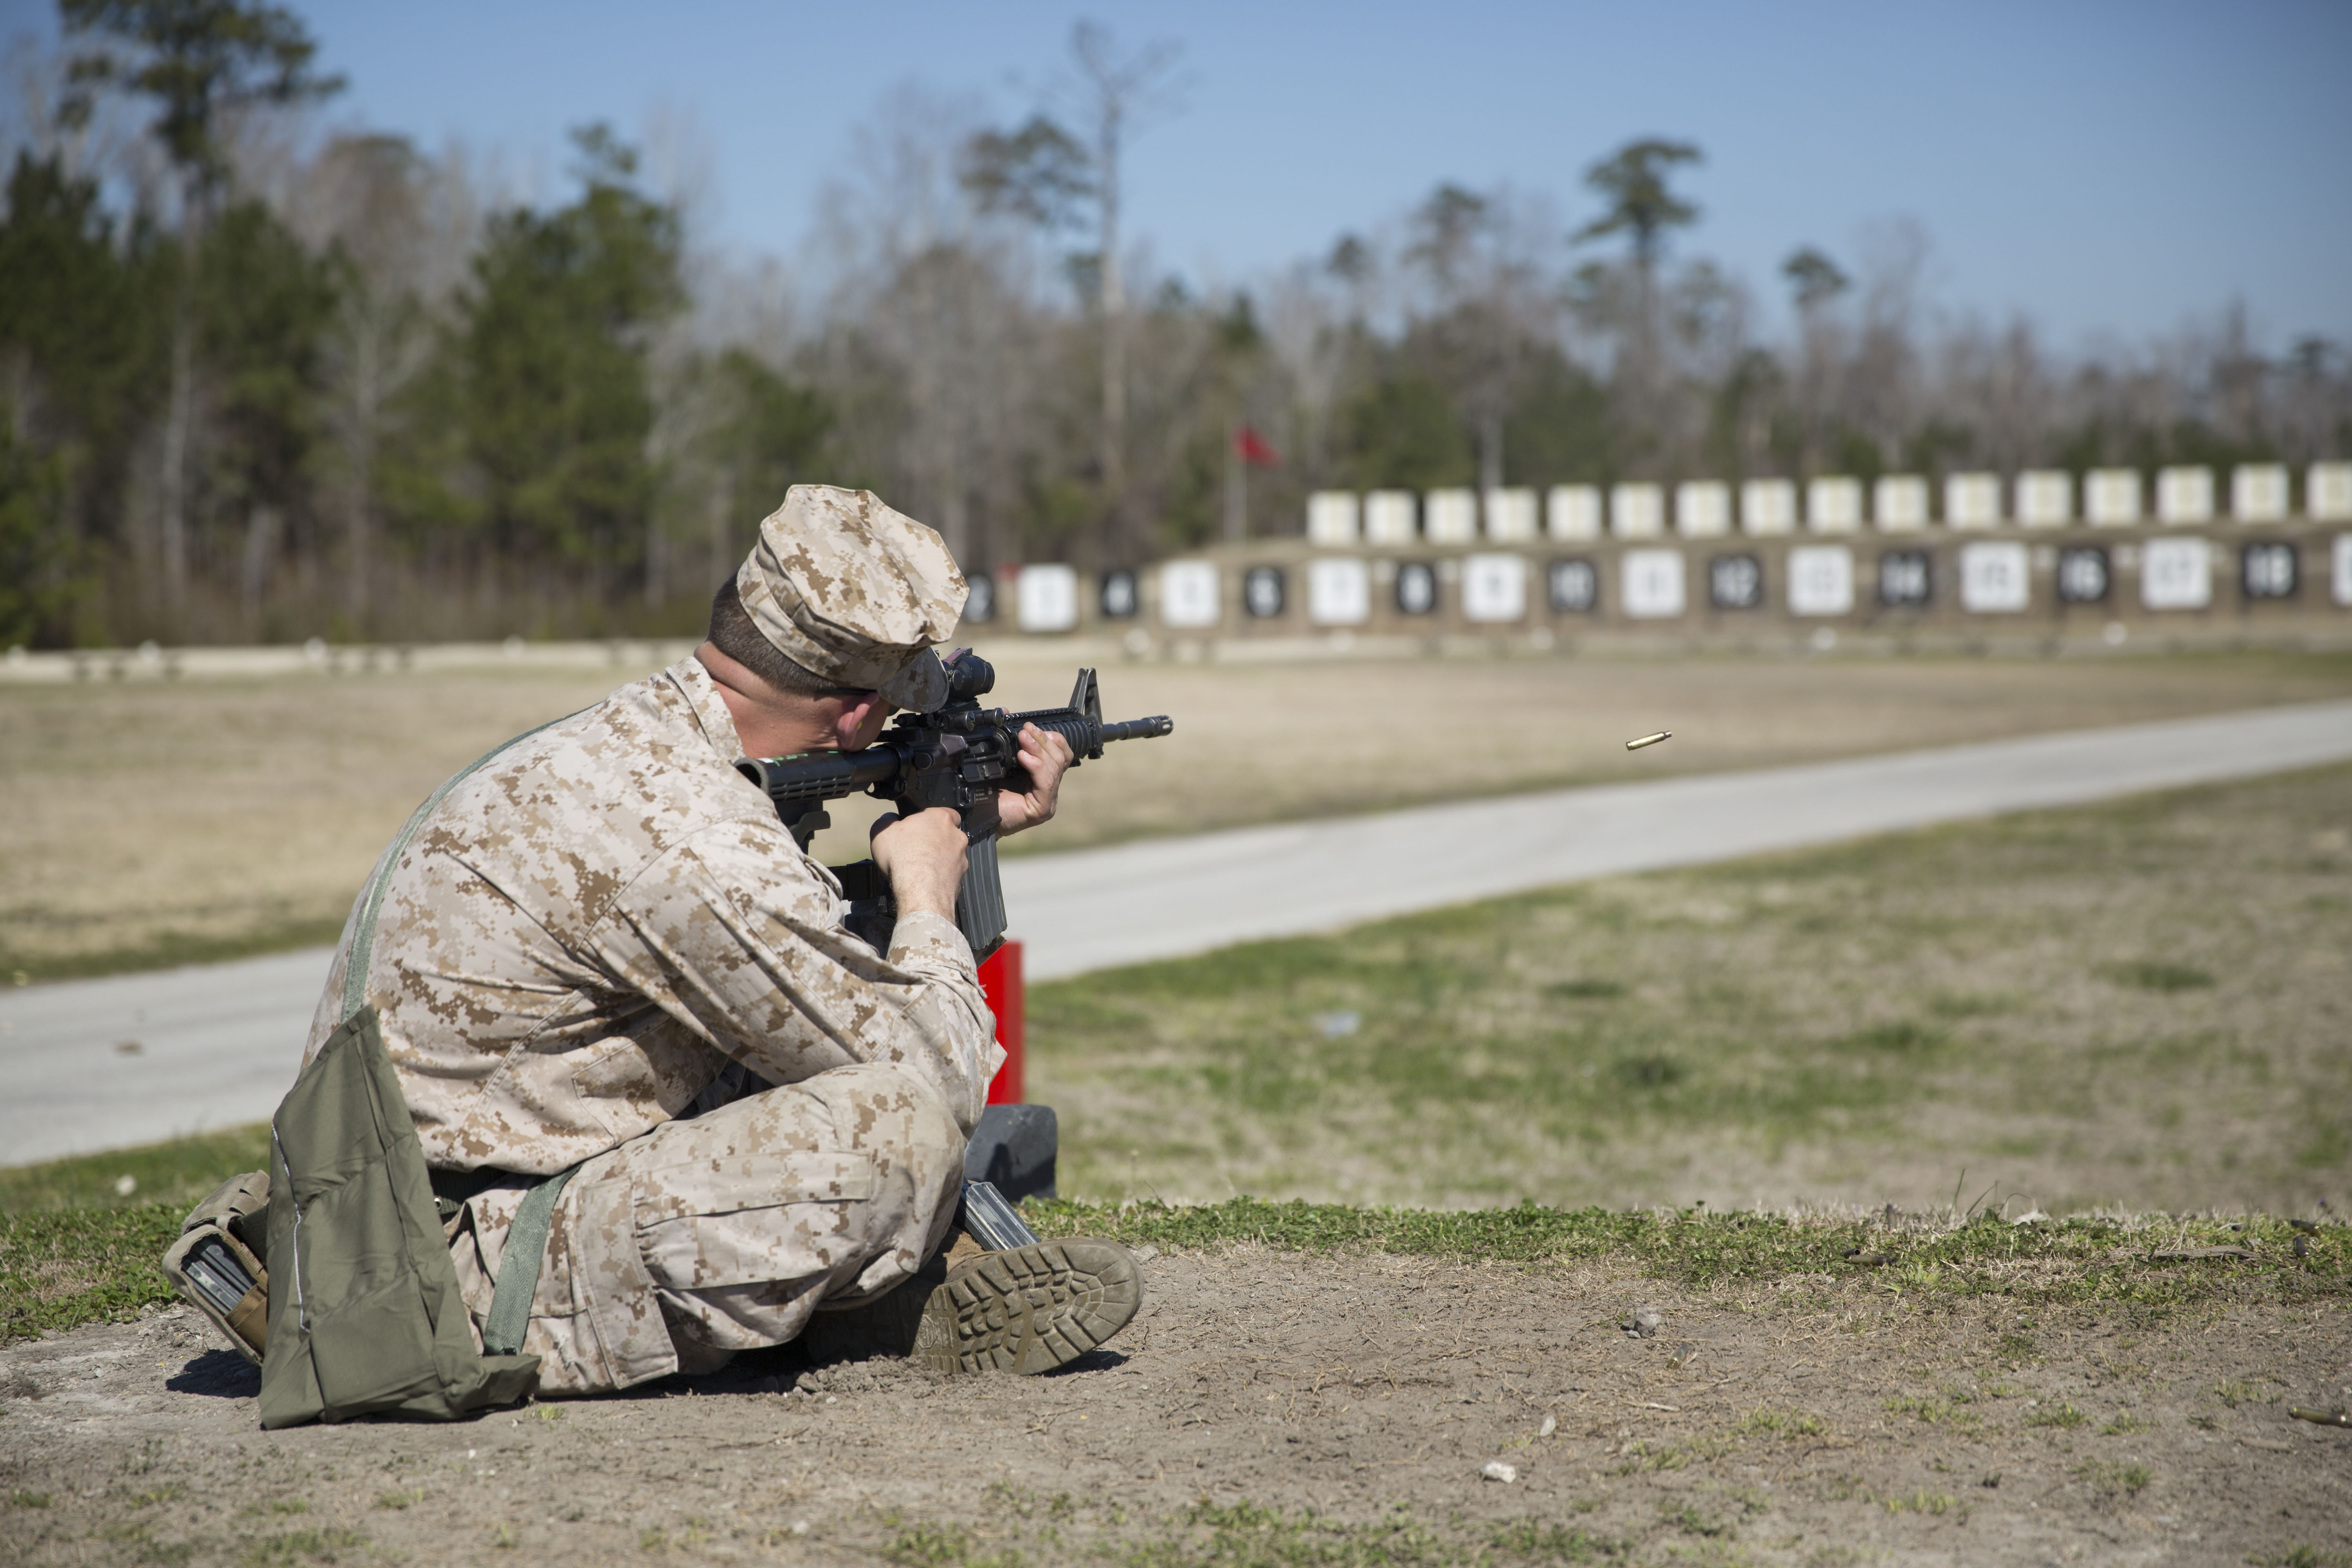 weapons training Weapons training from a-to z basic weapons safety, home and personal protection, ar-tactical shooting and maintenance, laong range shooting, target acquisition, concealed weapons training.